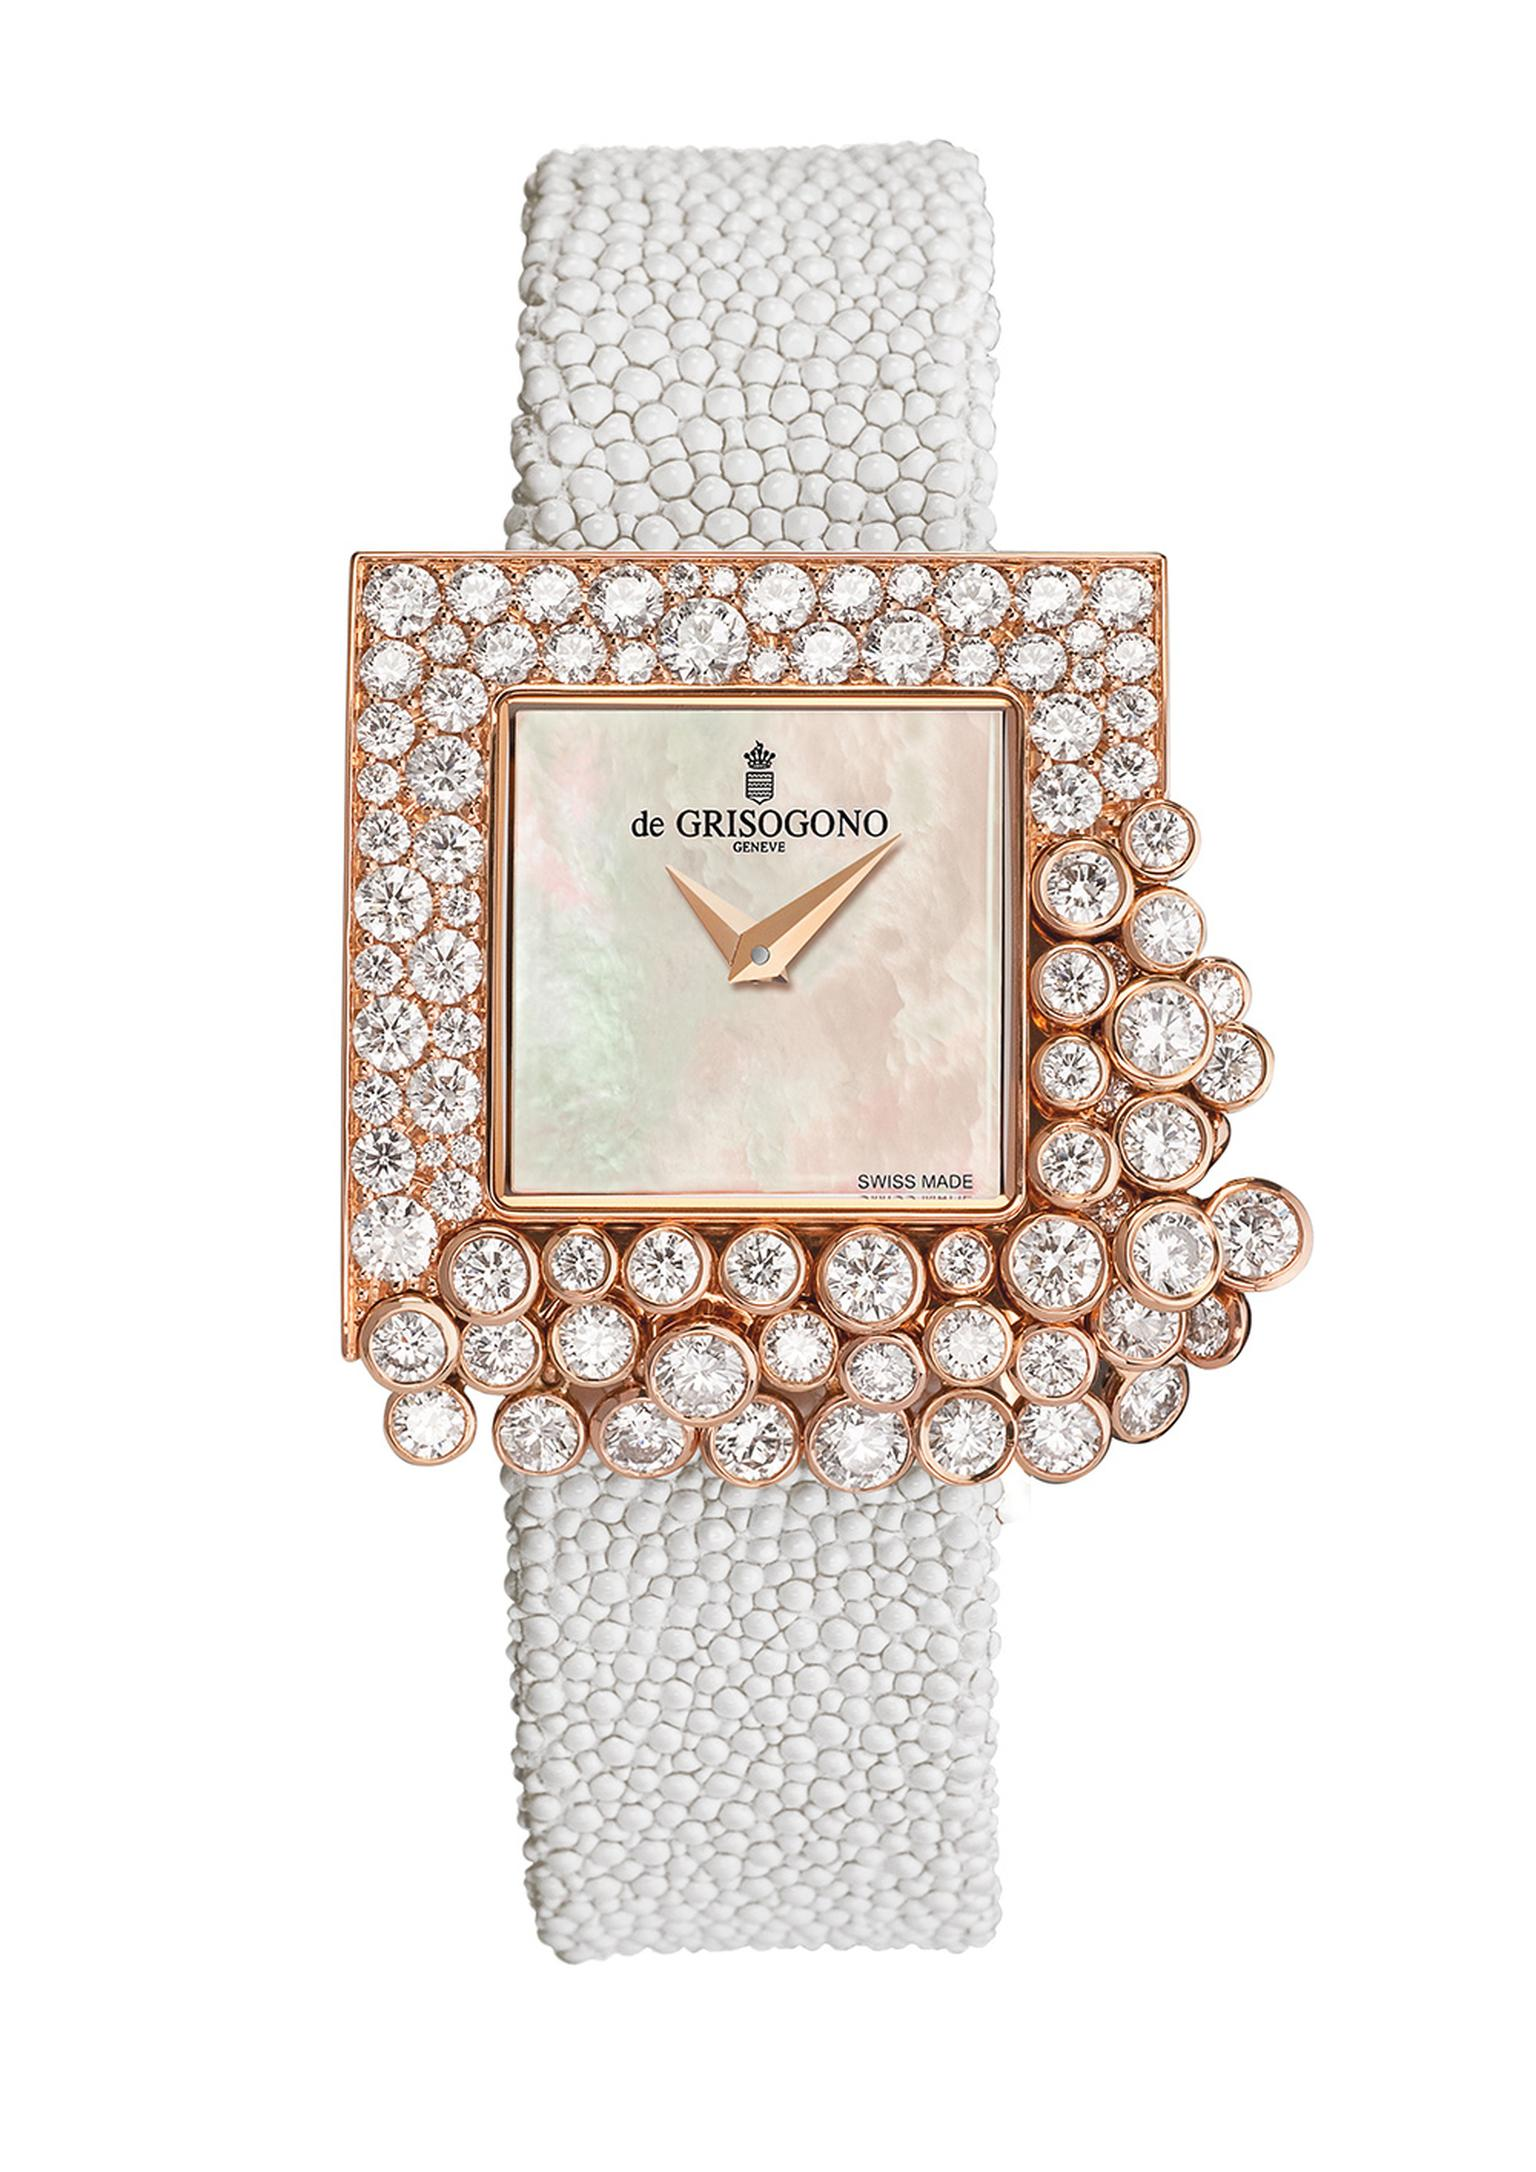 deGRISOGONO-SUGAR-WATCH-WHITE-S06-PSoldat